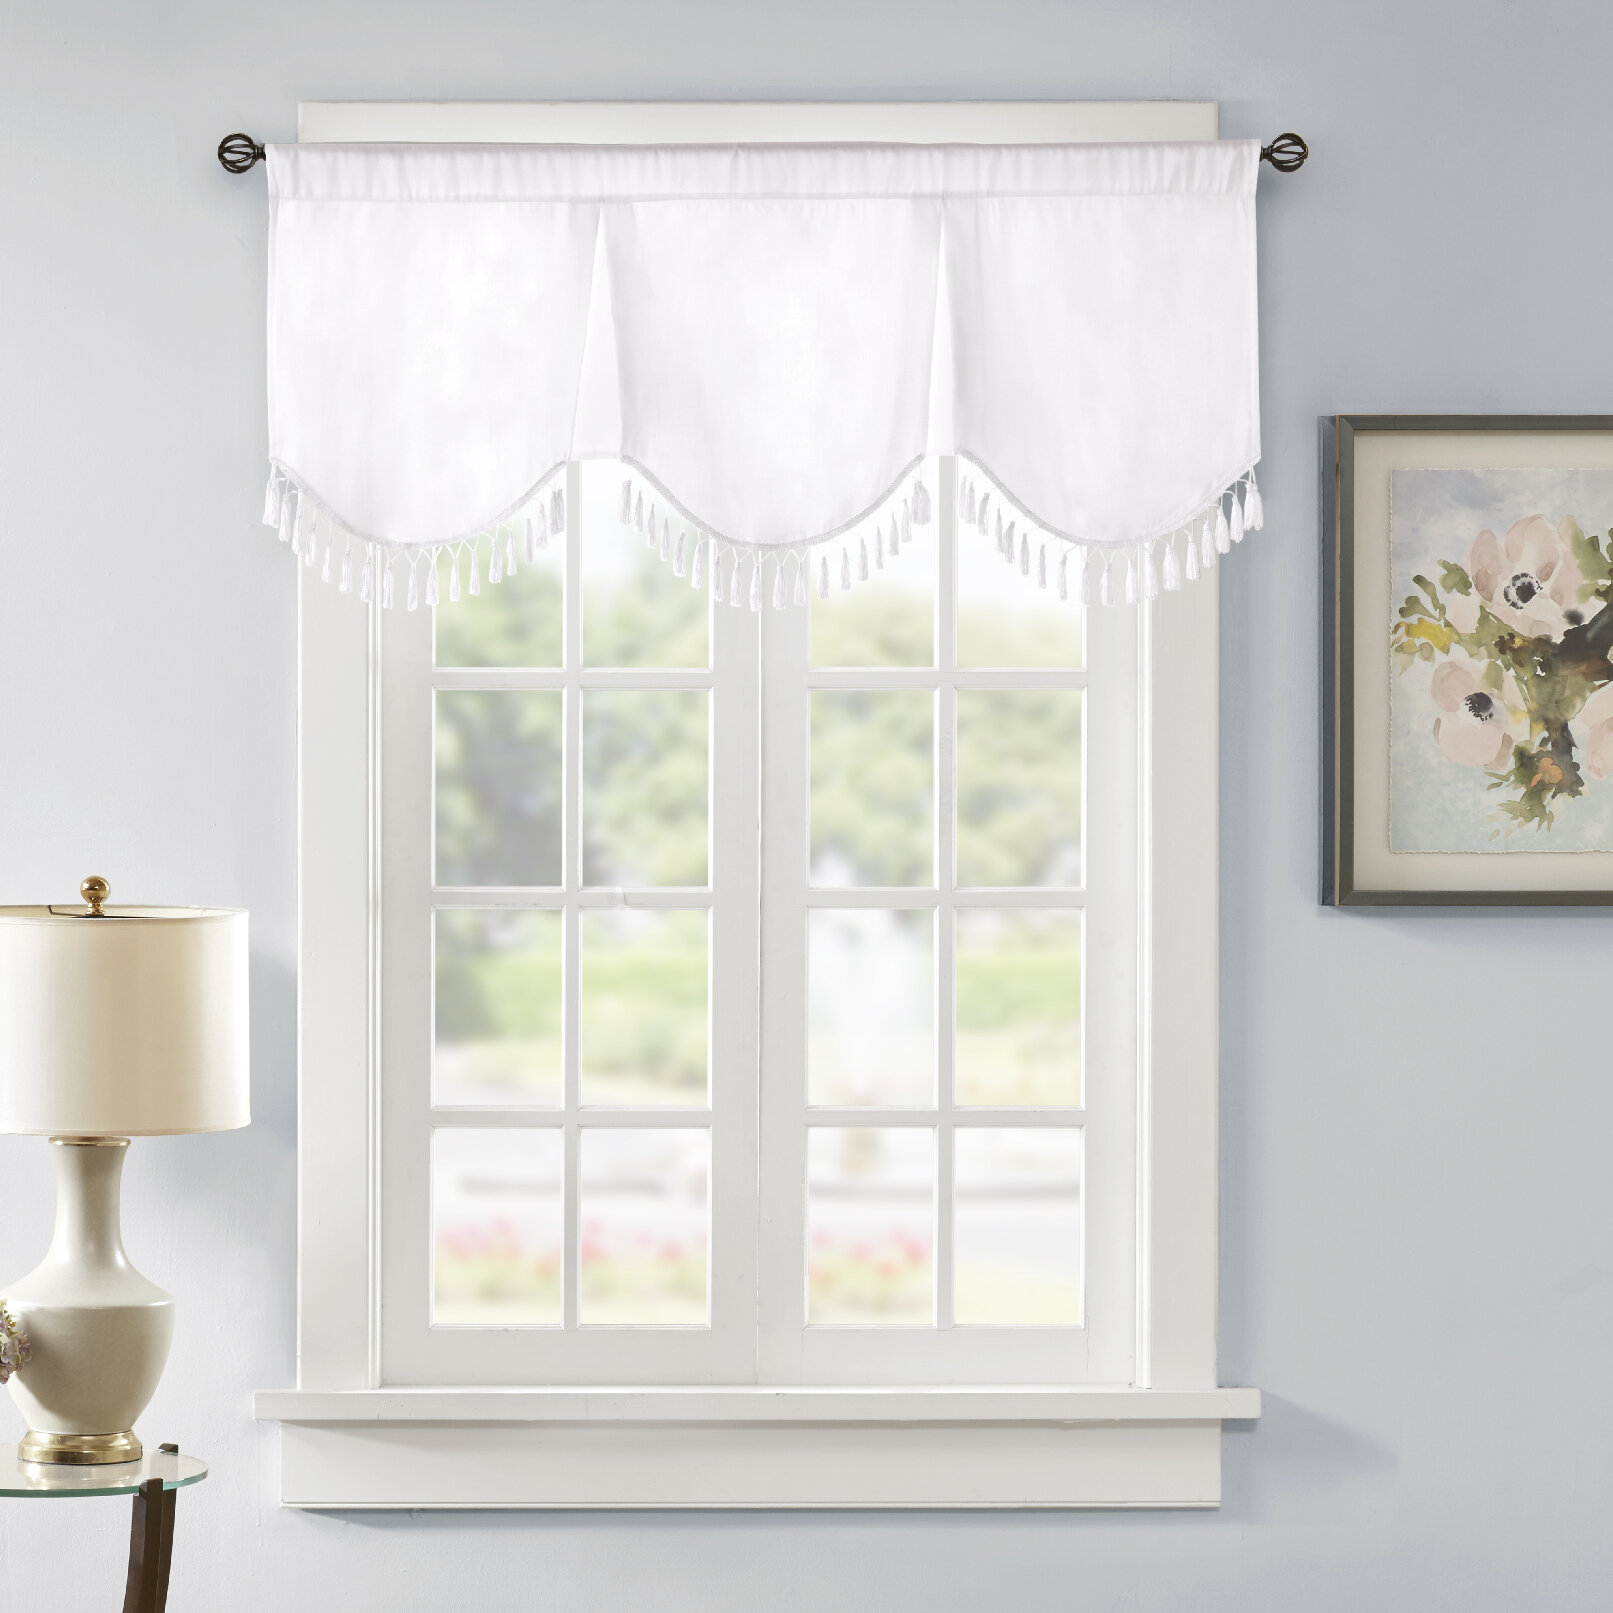 curtain window best diy box bay ideas blinds valance pinterest nursery on t cornice aluminum